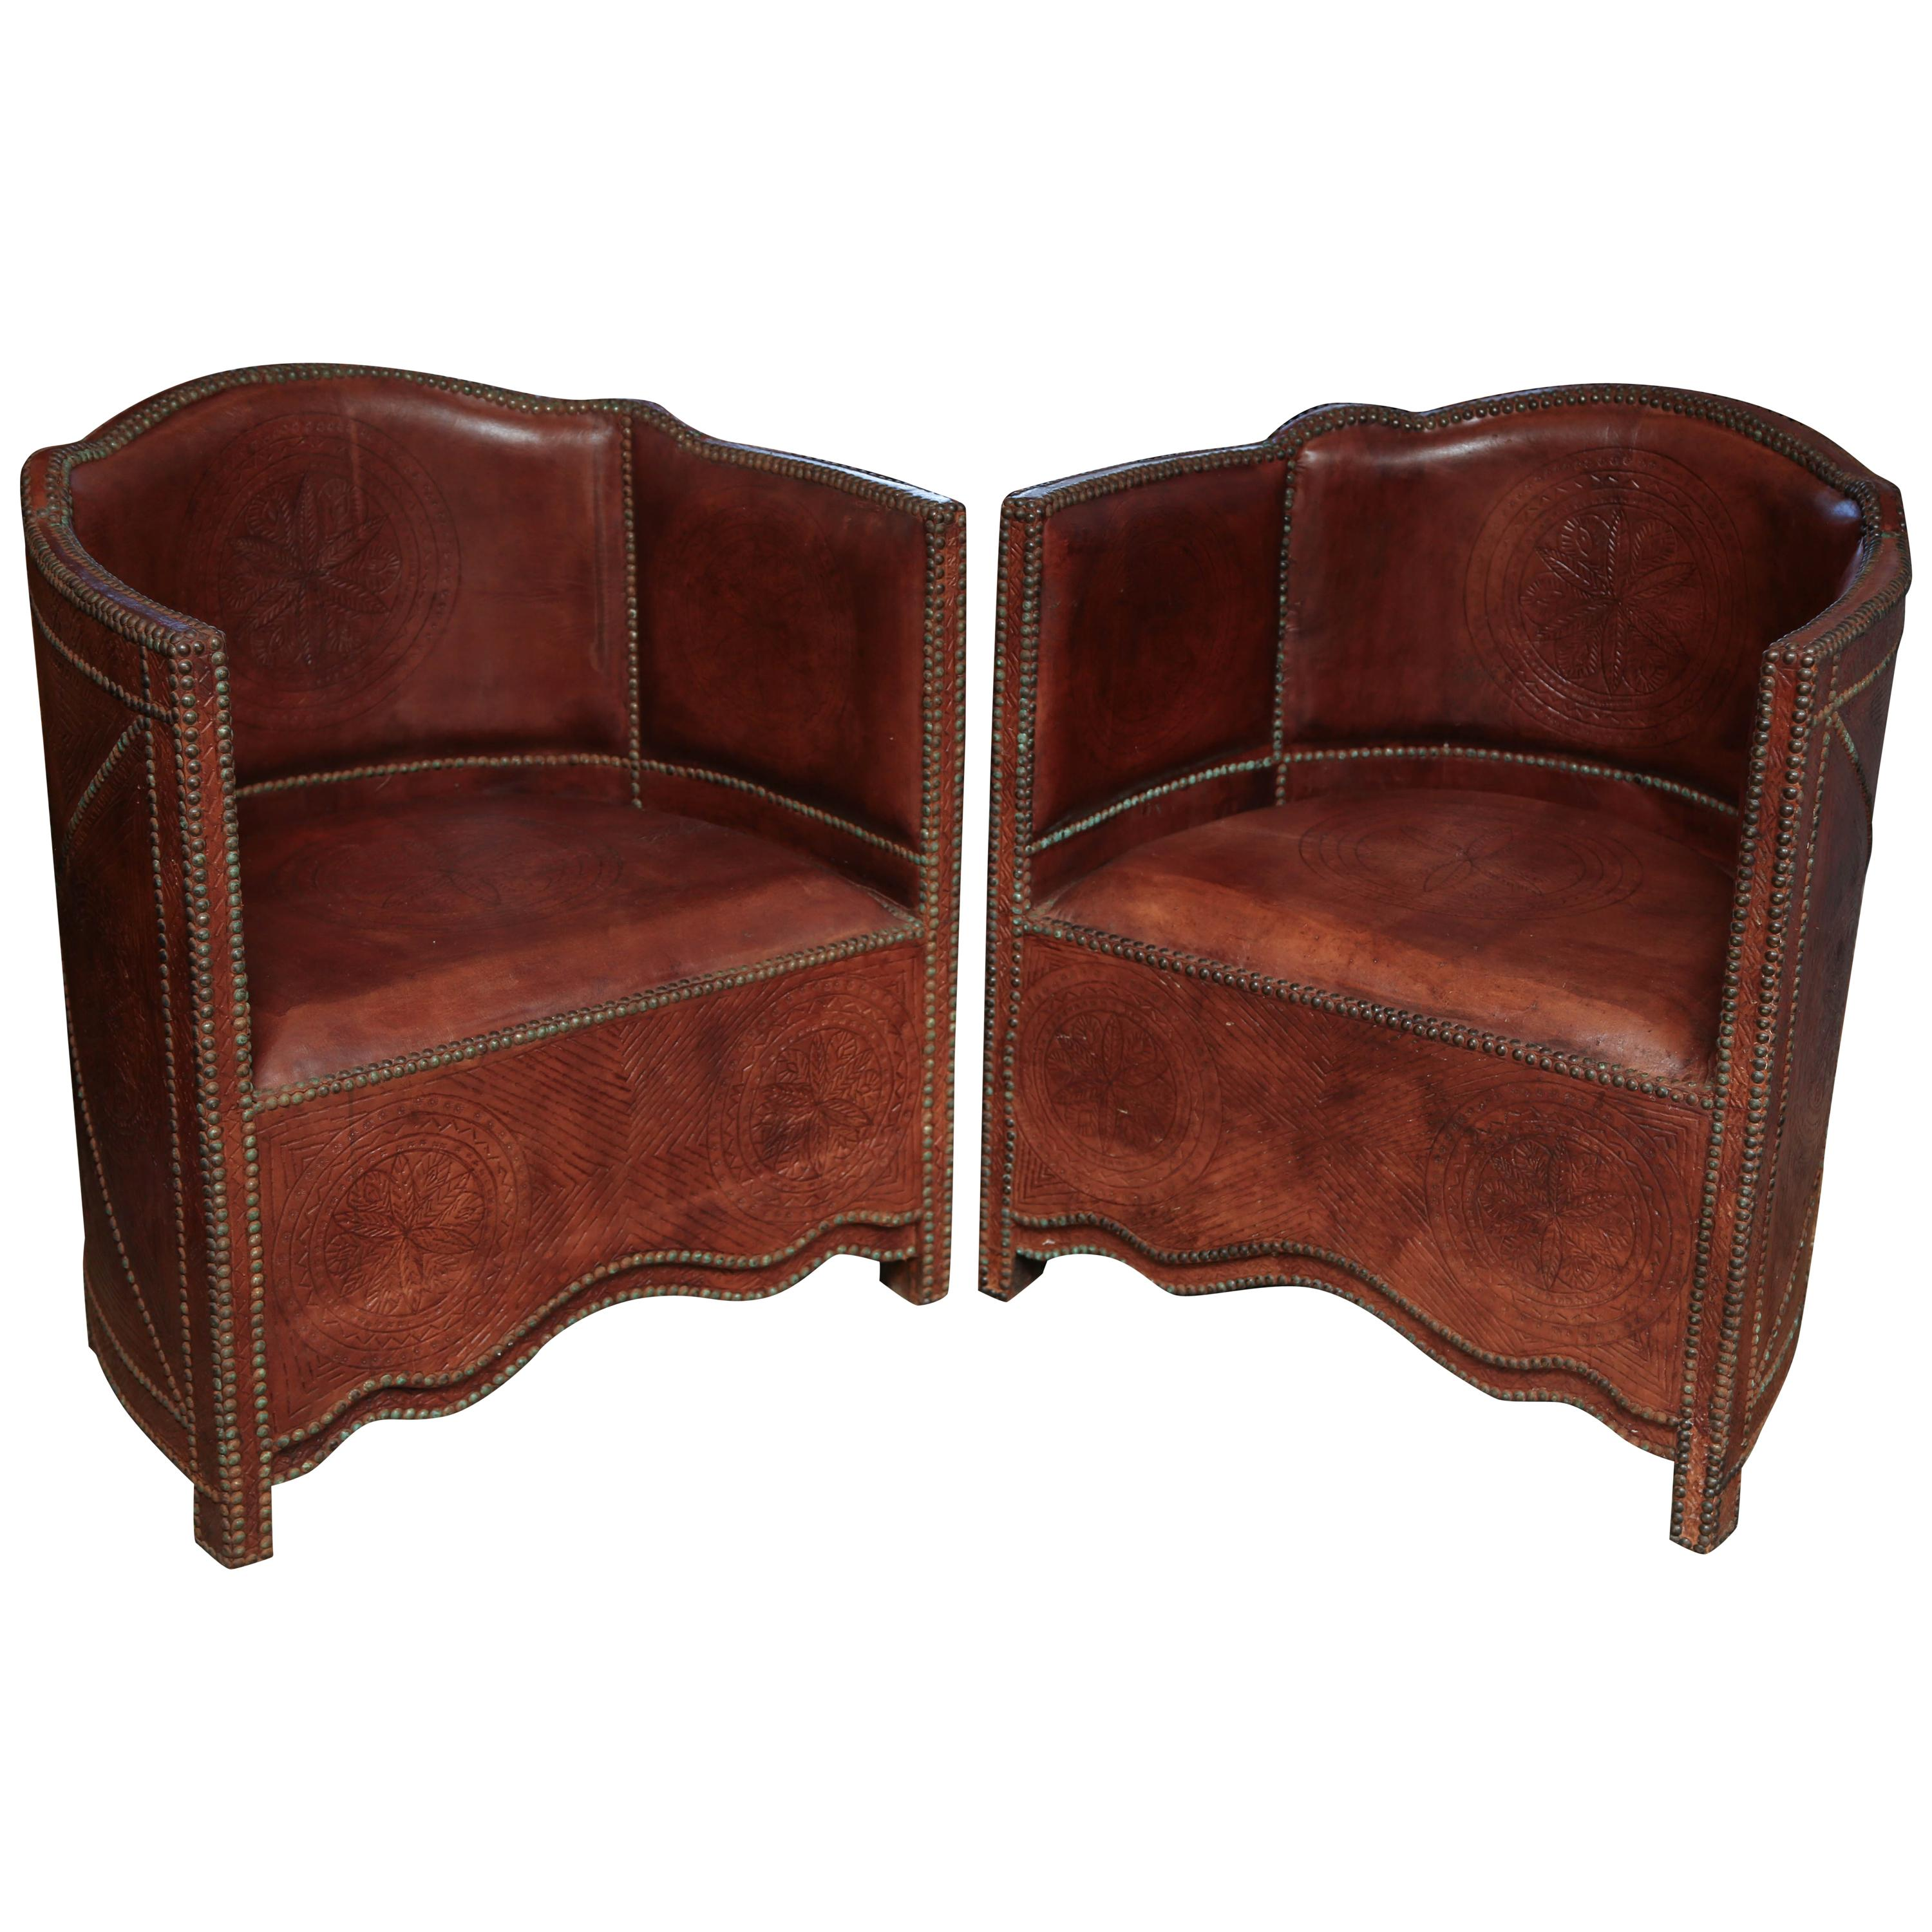 Superieur Superb Pair Of Vintage Moroccan Leather Barrel Chairs